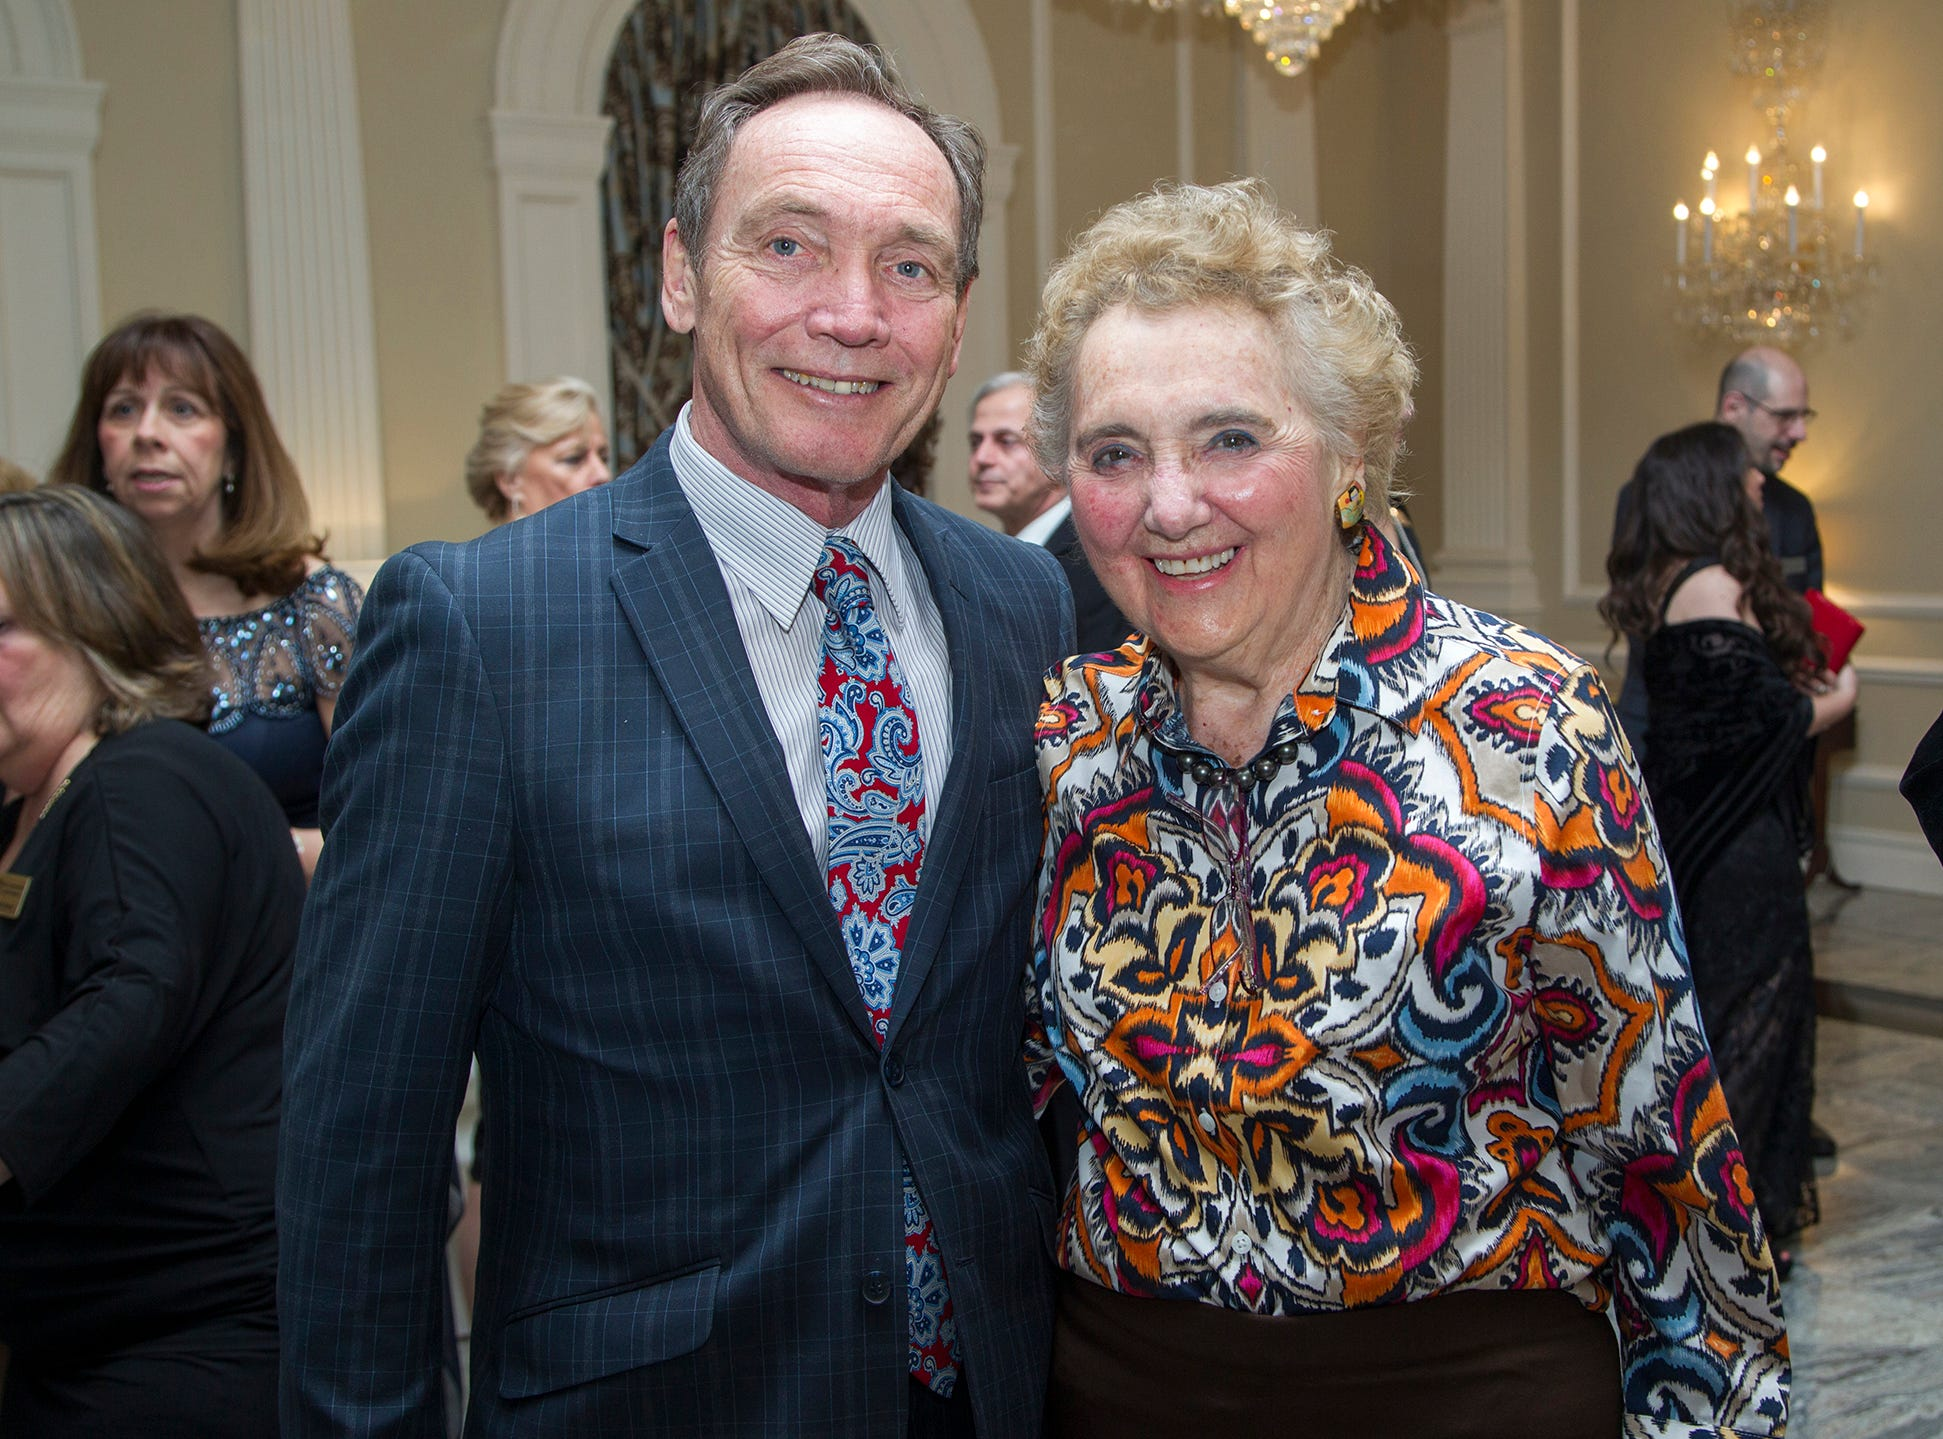 Tim Eustace and Elaine Adler. Ramapo College held its 37th Annual Distinguished Citizens Dinner at Rockleigh Country Club. 03/02/2019